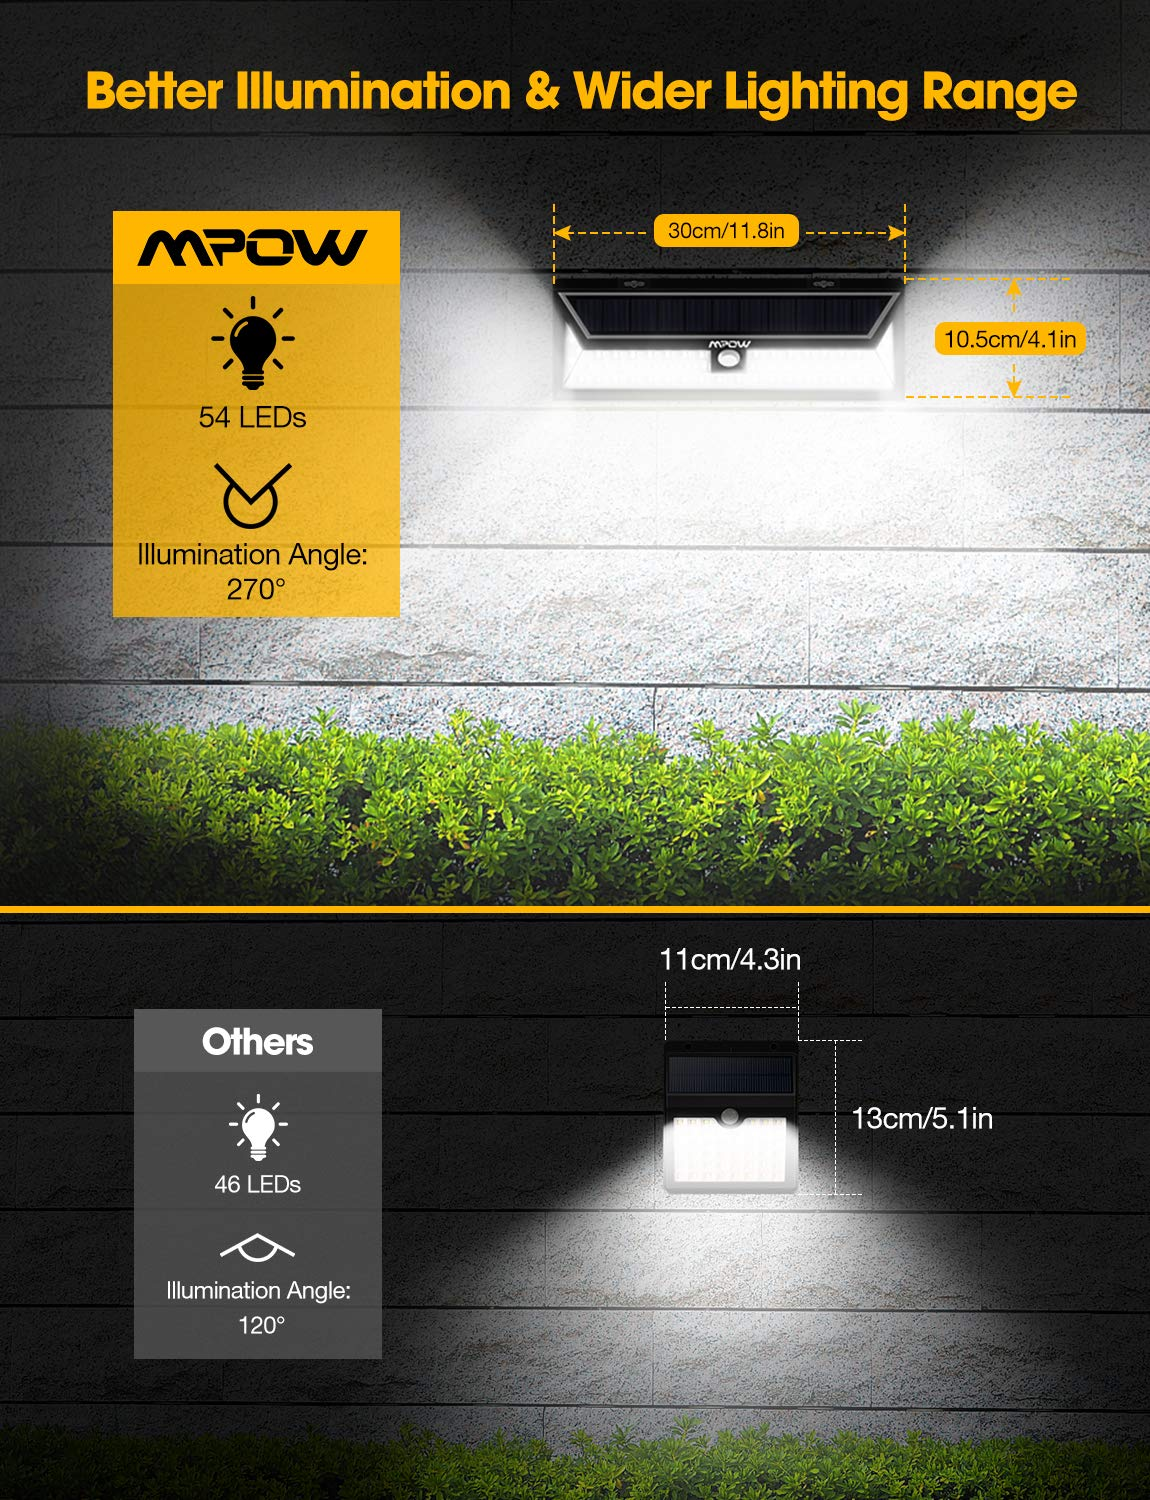 Mpow 54 LED Security Lights, Solar Powered Lights Outdoor Wall Lamp 3